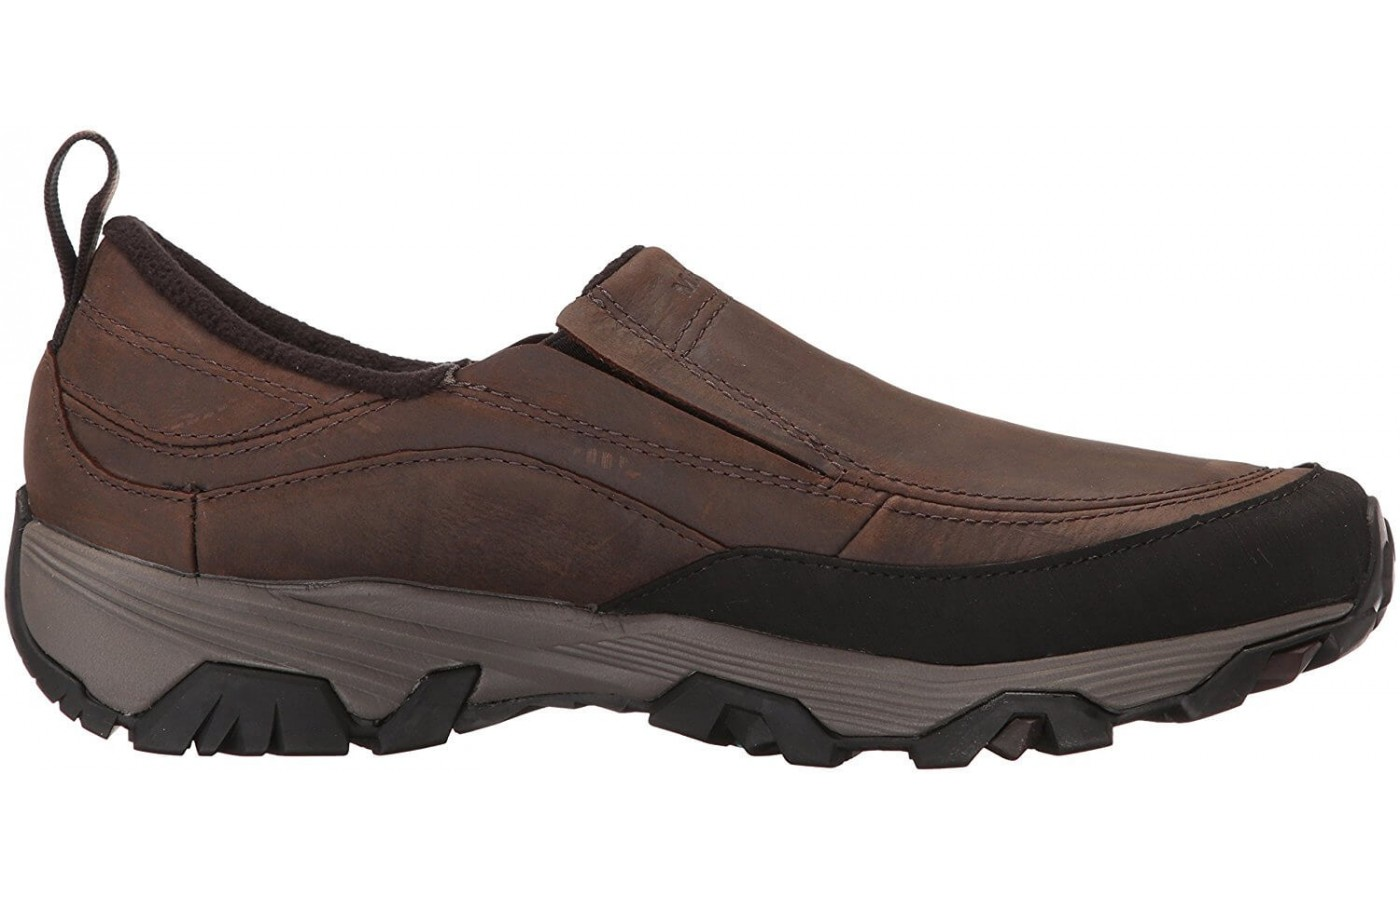 A lateral view of the Merrell ColdPack Ice.